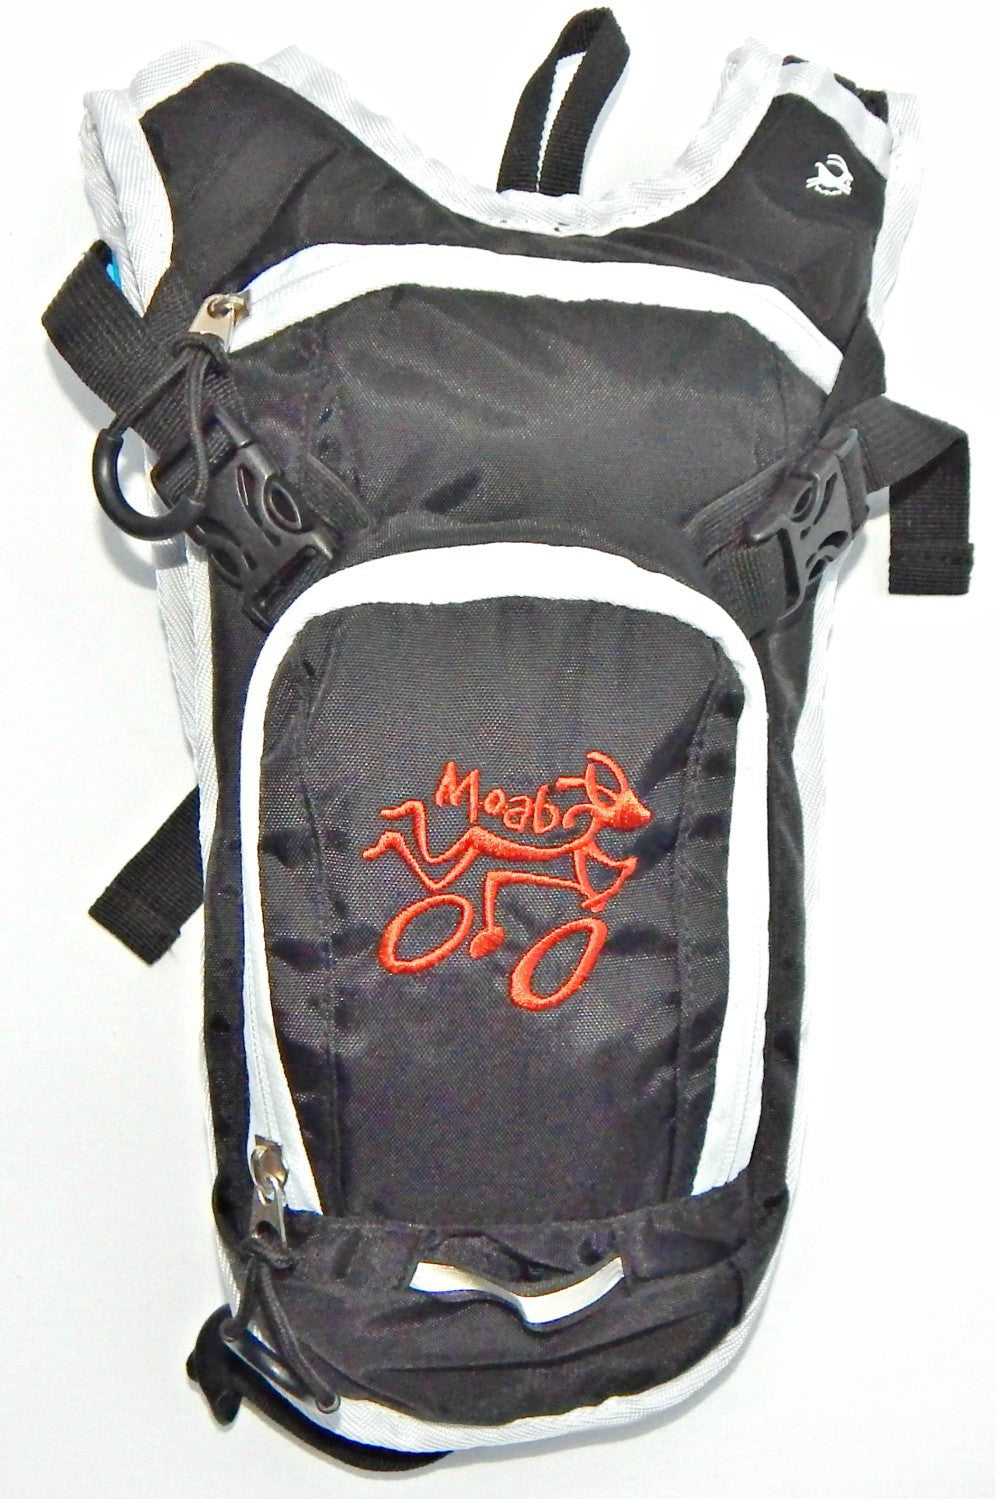 Youth Hydration Pack - Black / Rust MOAB Biker